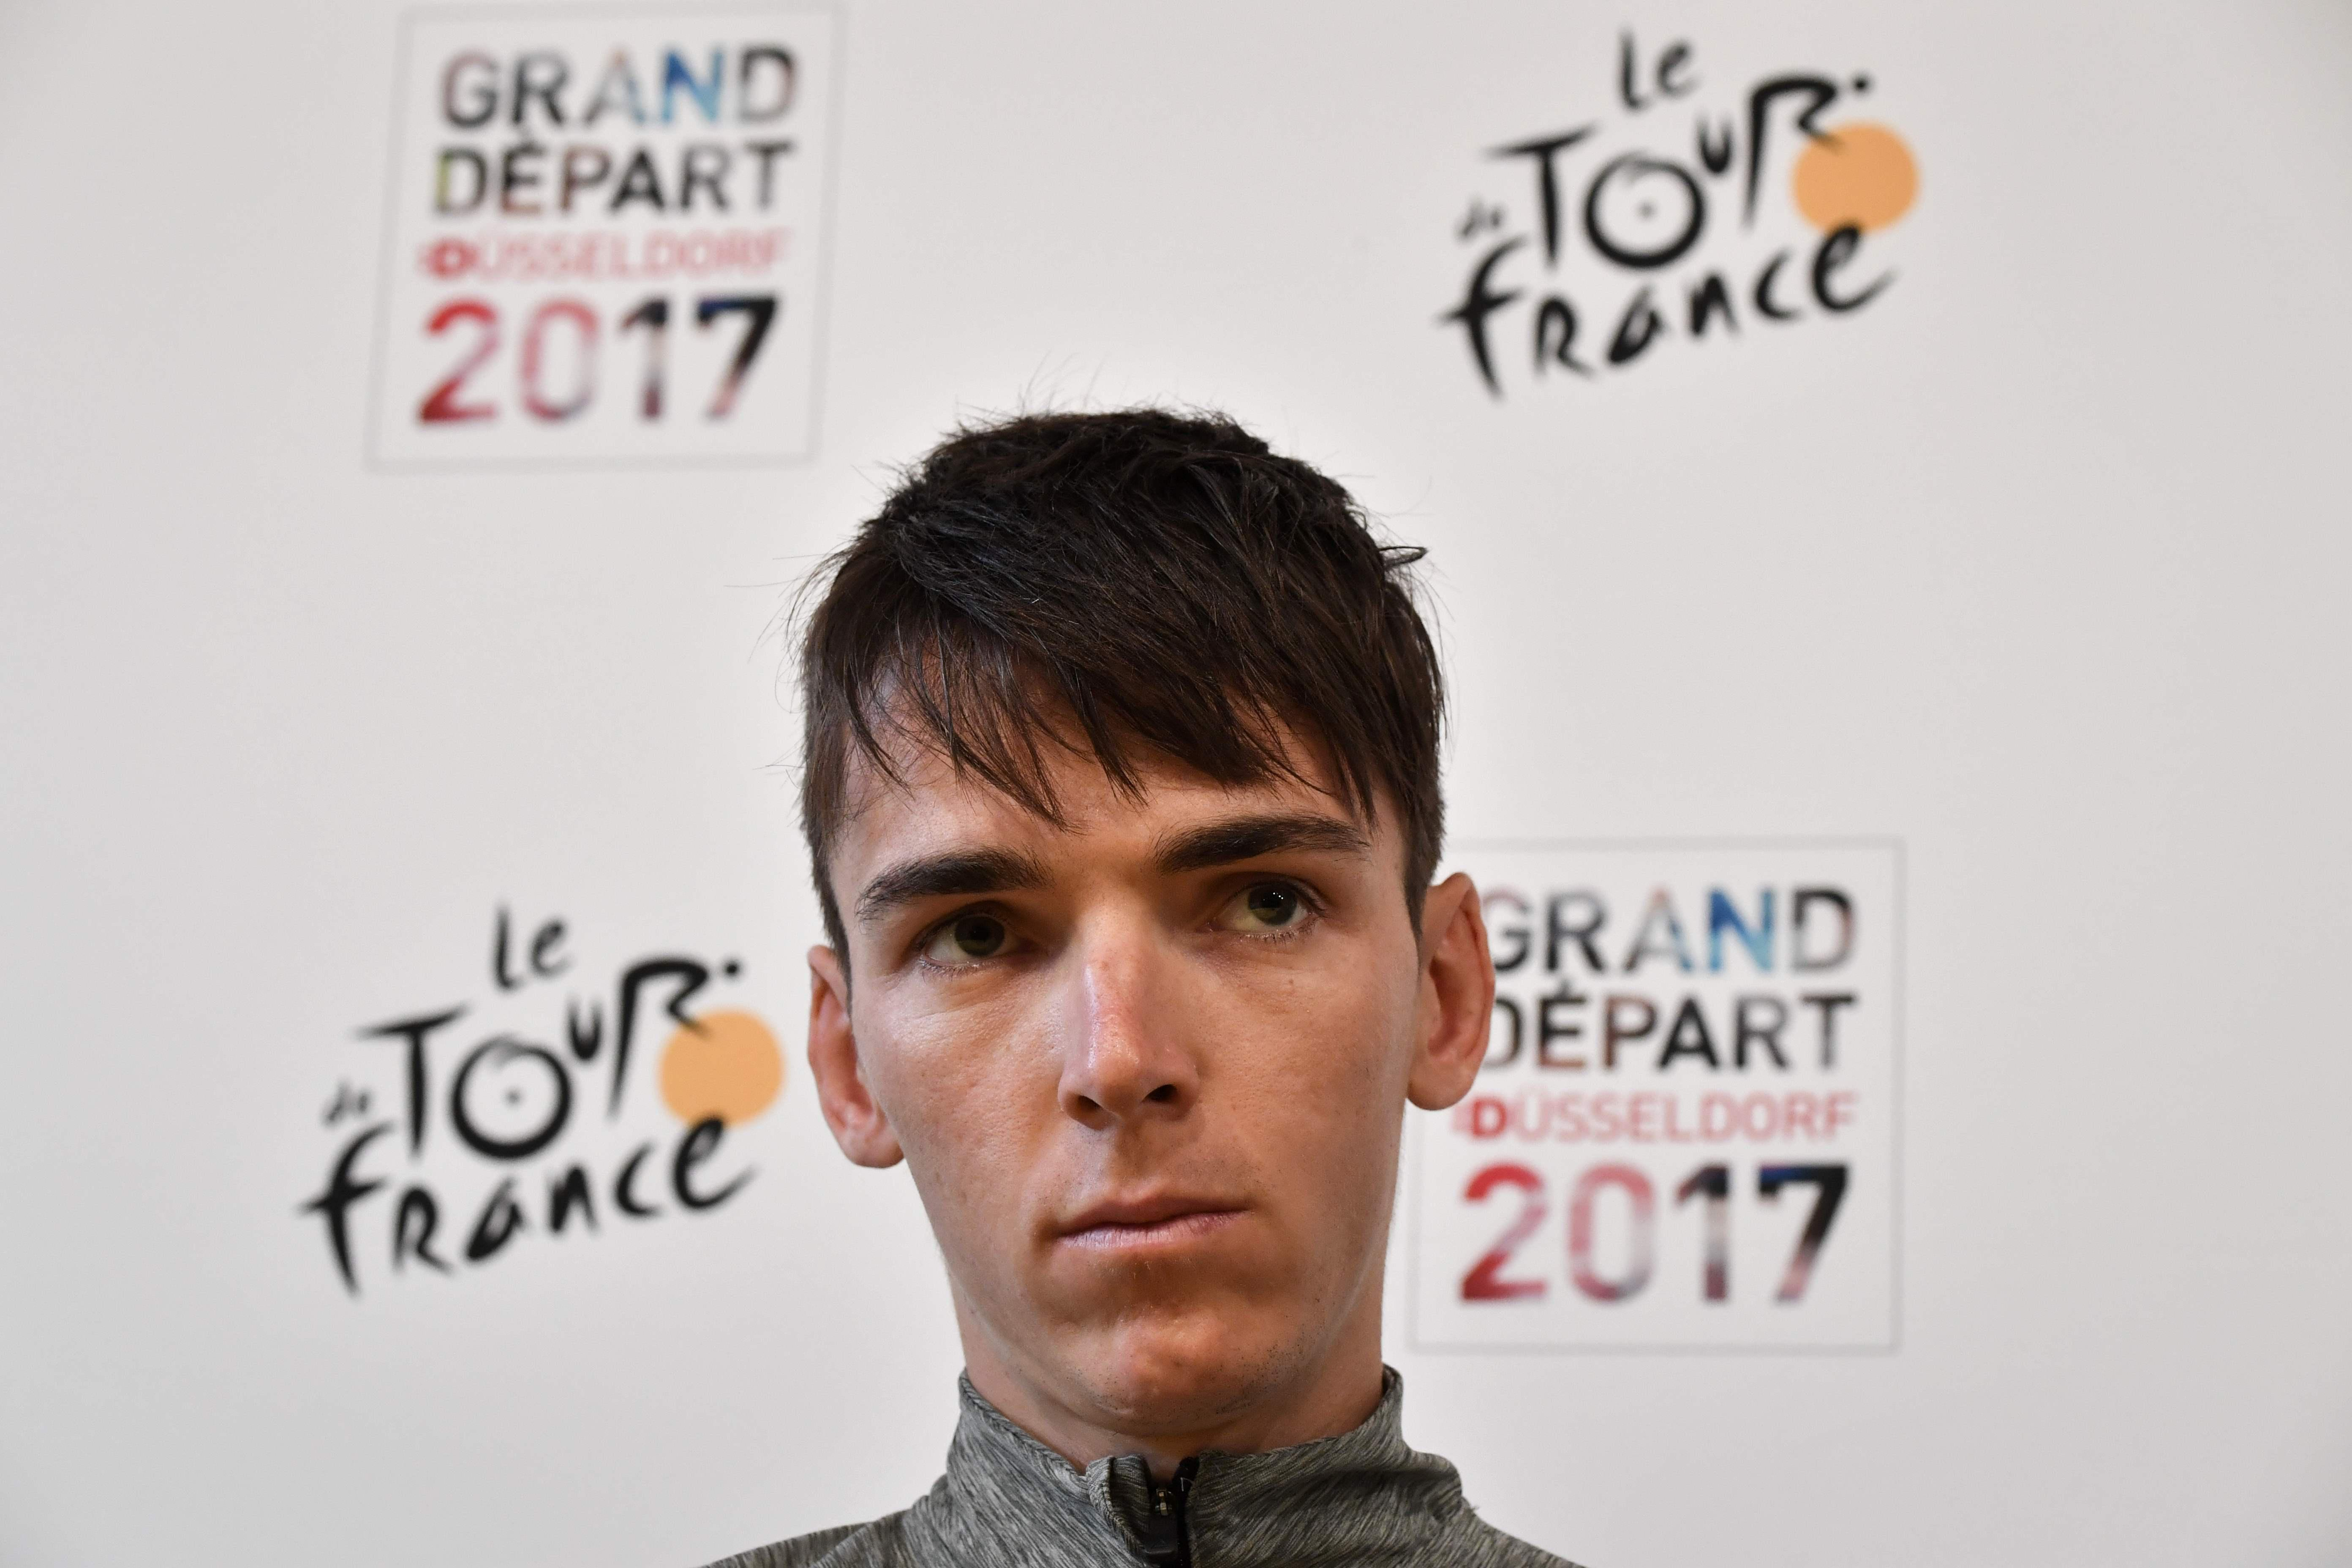 Romain Bardet remains one of the big French hopes at the Tour de France